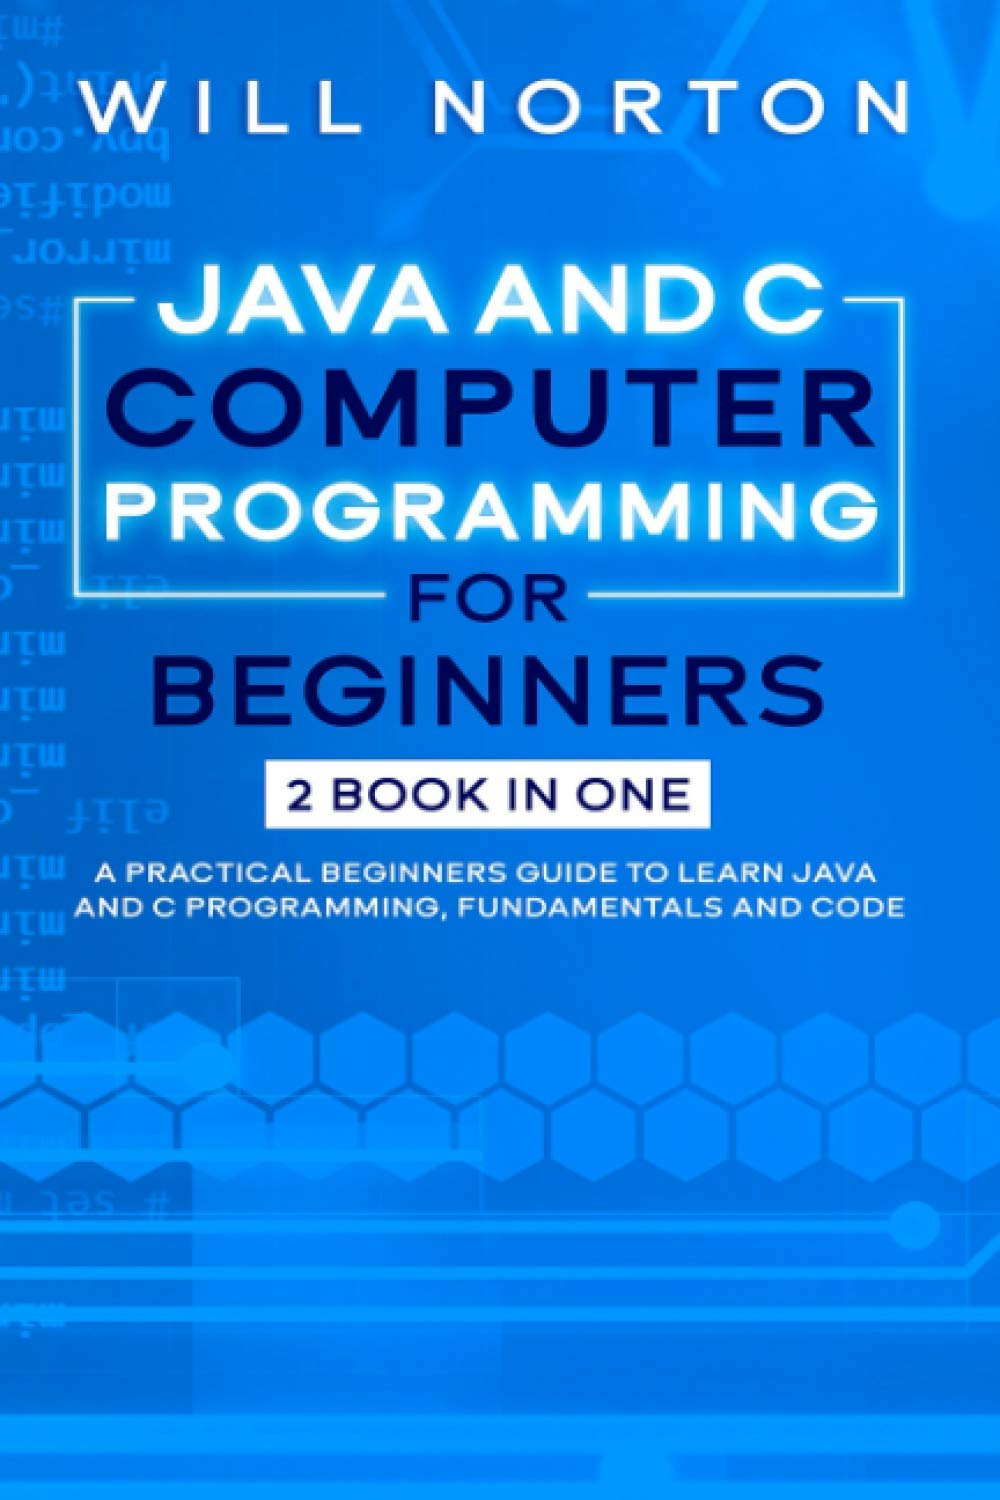 Java ans C computer programming for beginners: 2 BOOK IN ONE A practical beginners guide to learn Java and C programming, fundamentals and code: 7